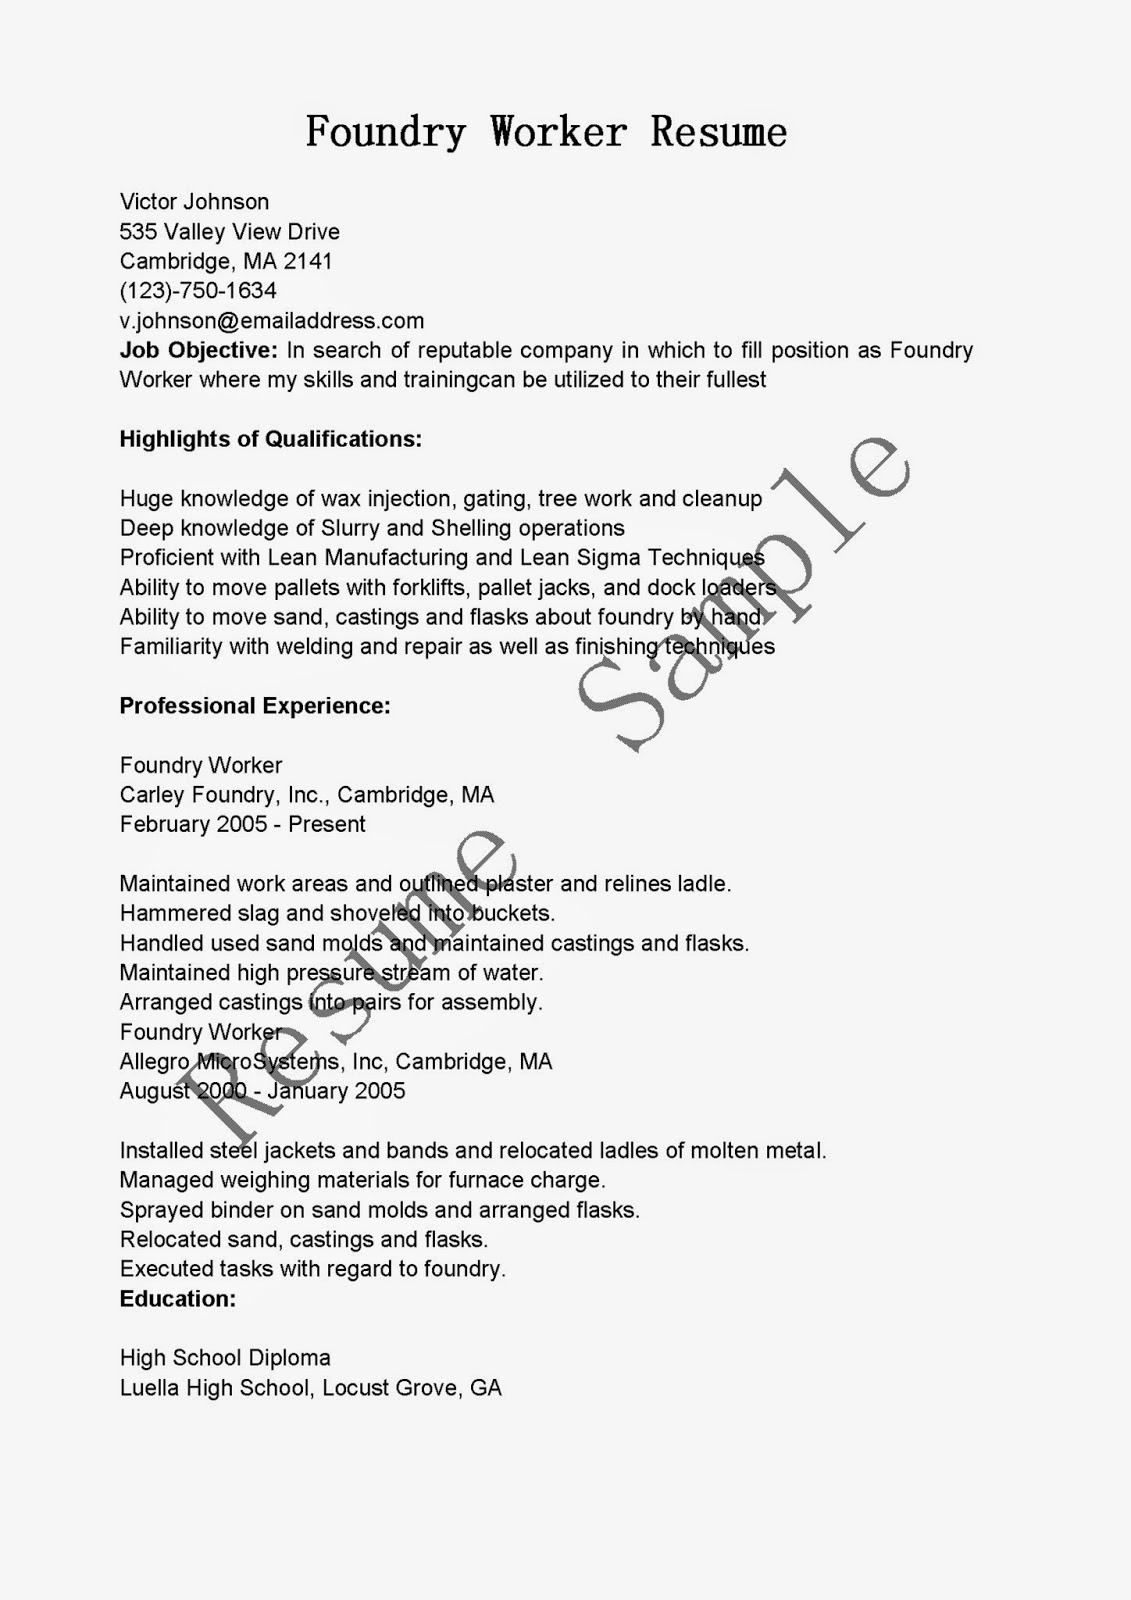 escrow officer job description resume fedex dock worker sample resume  hardware support sample resume - Escrow